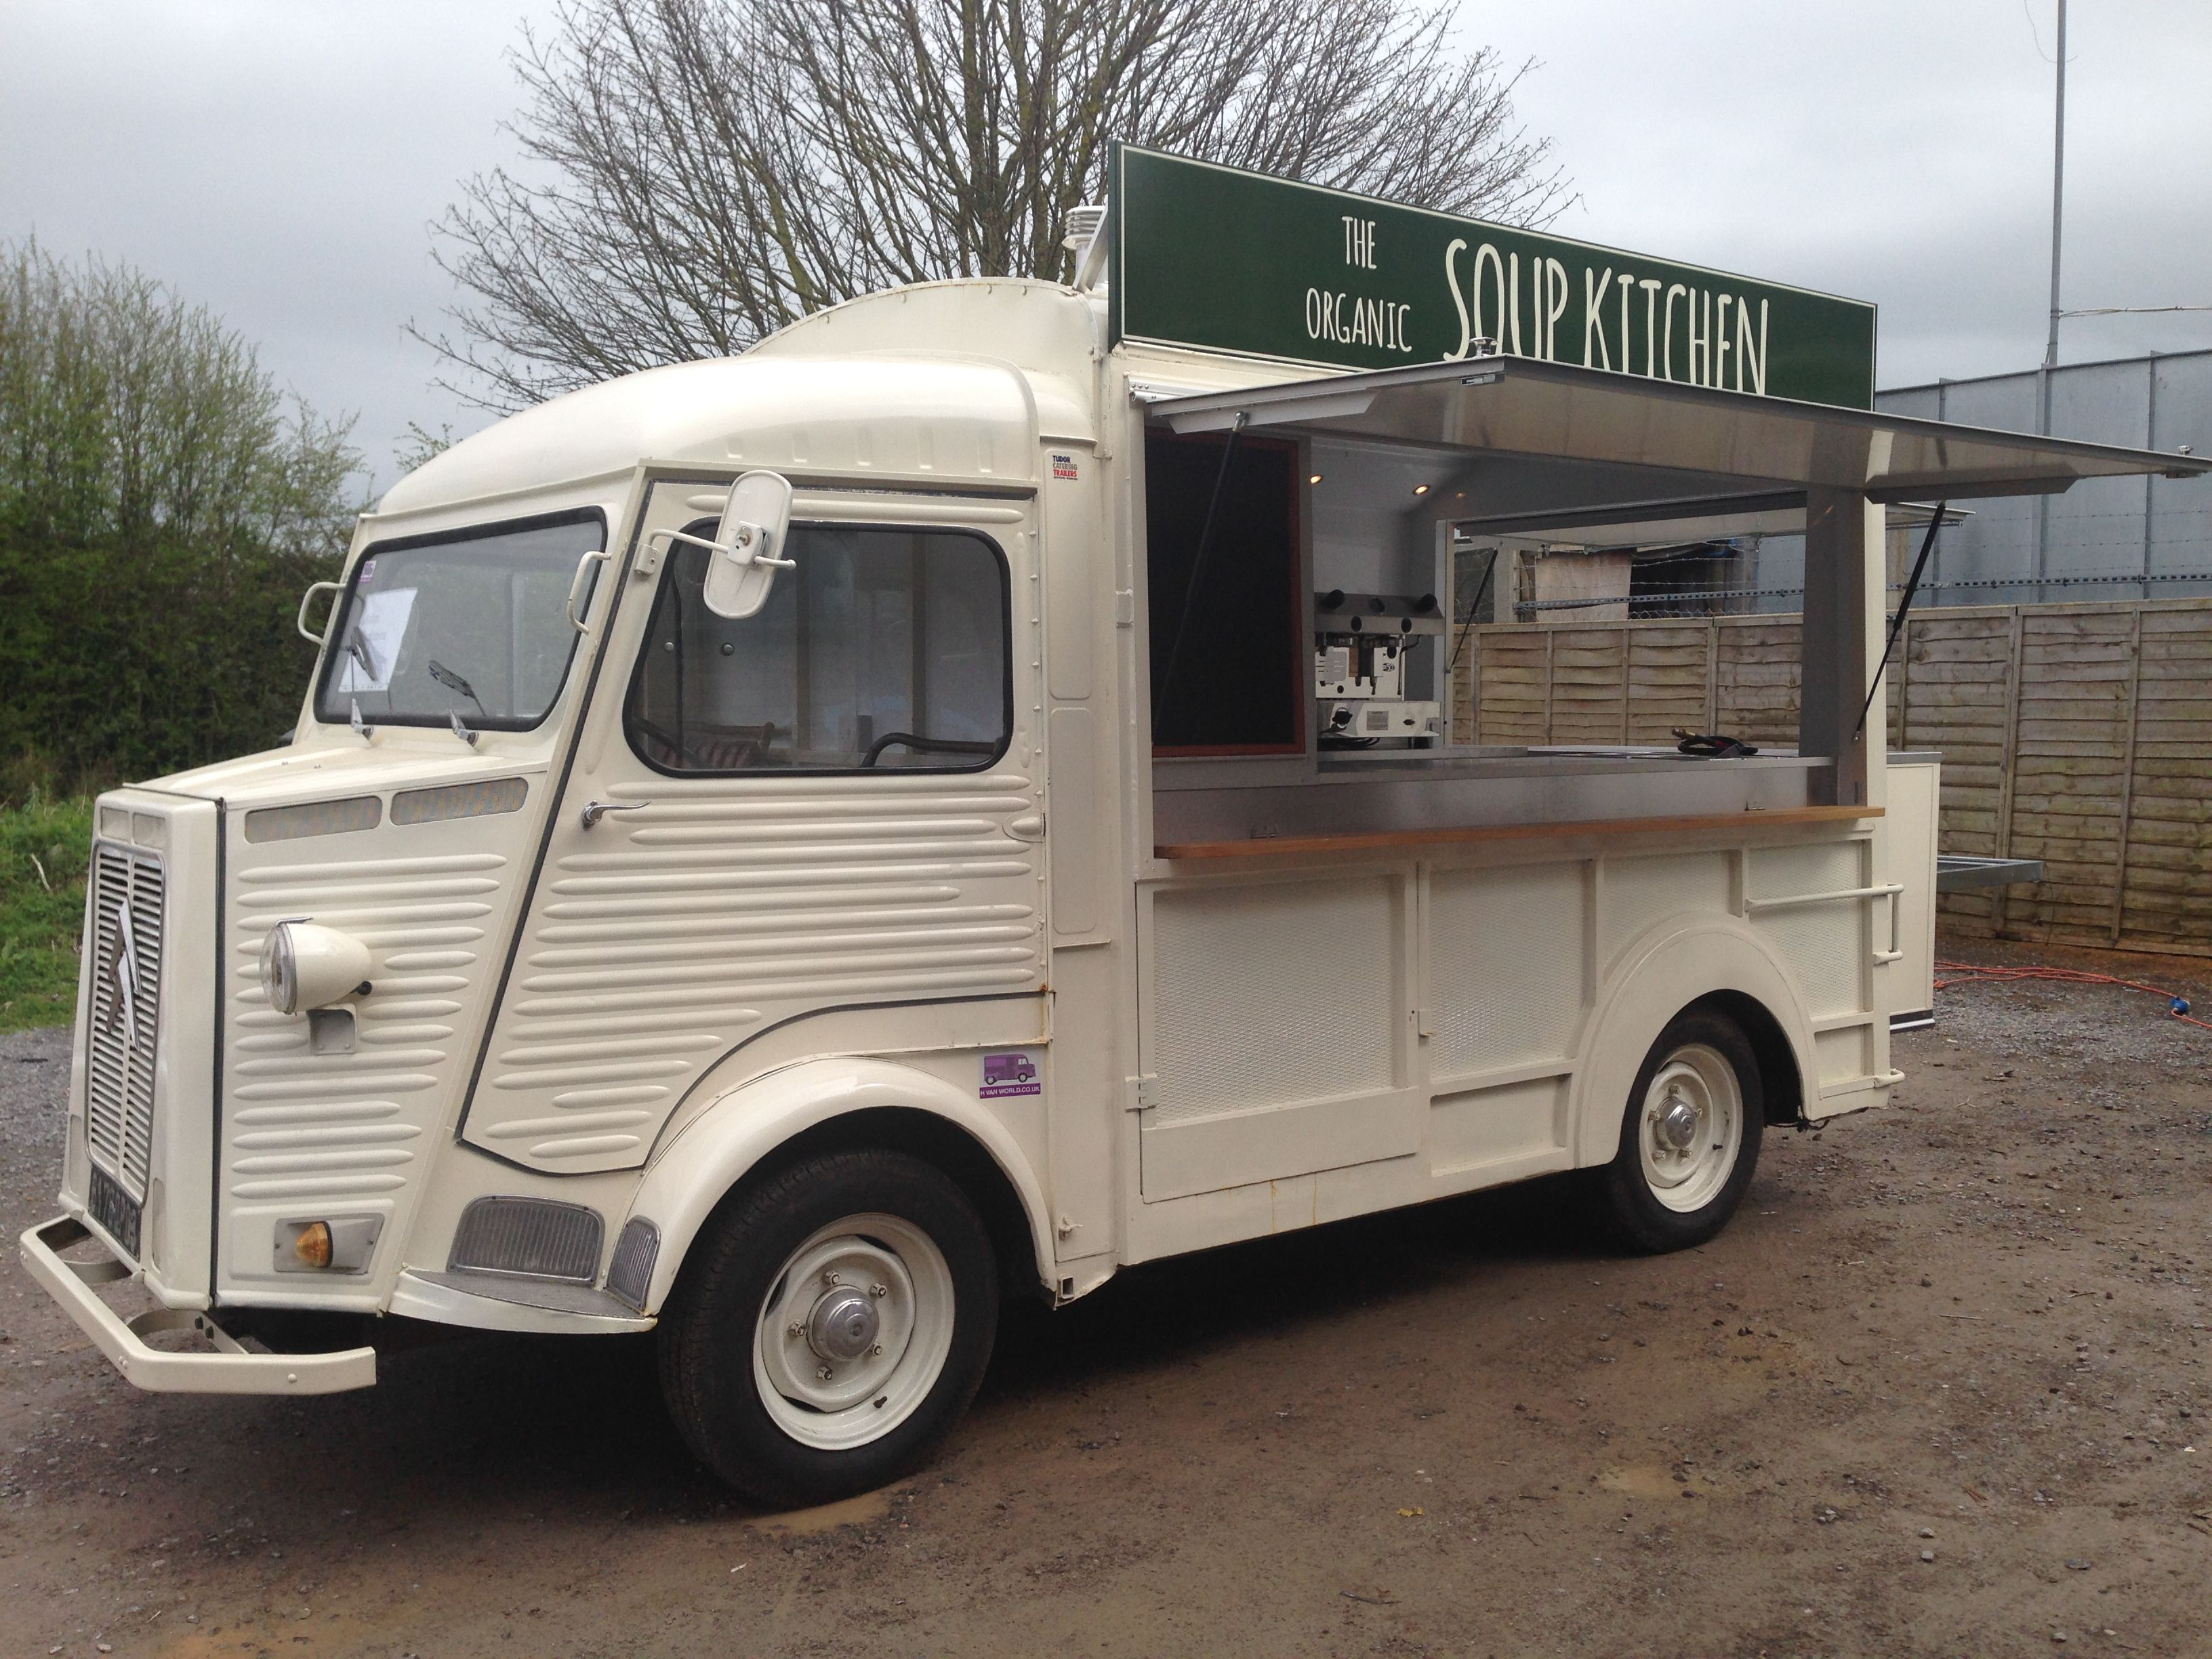 Organic Soup Kitchen The organic soup kitchen van french hn conversions pinterest the organic soup kitchen van workwithnaturefo